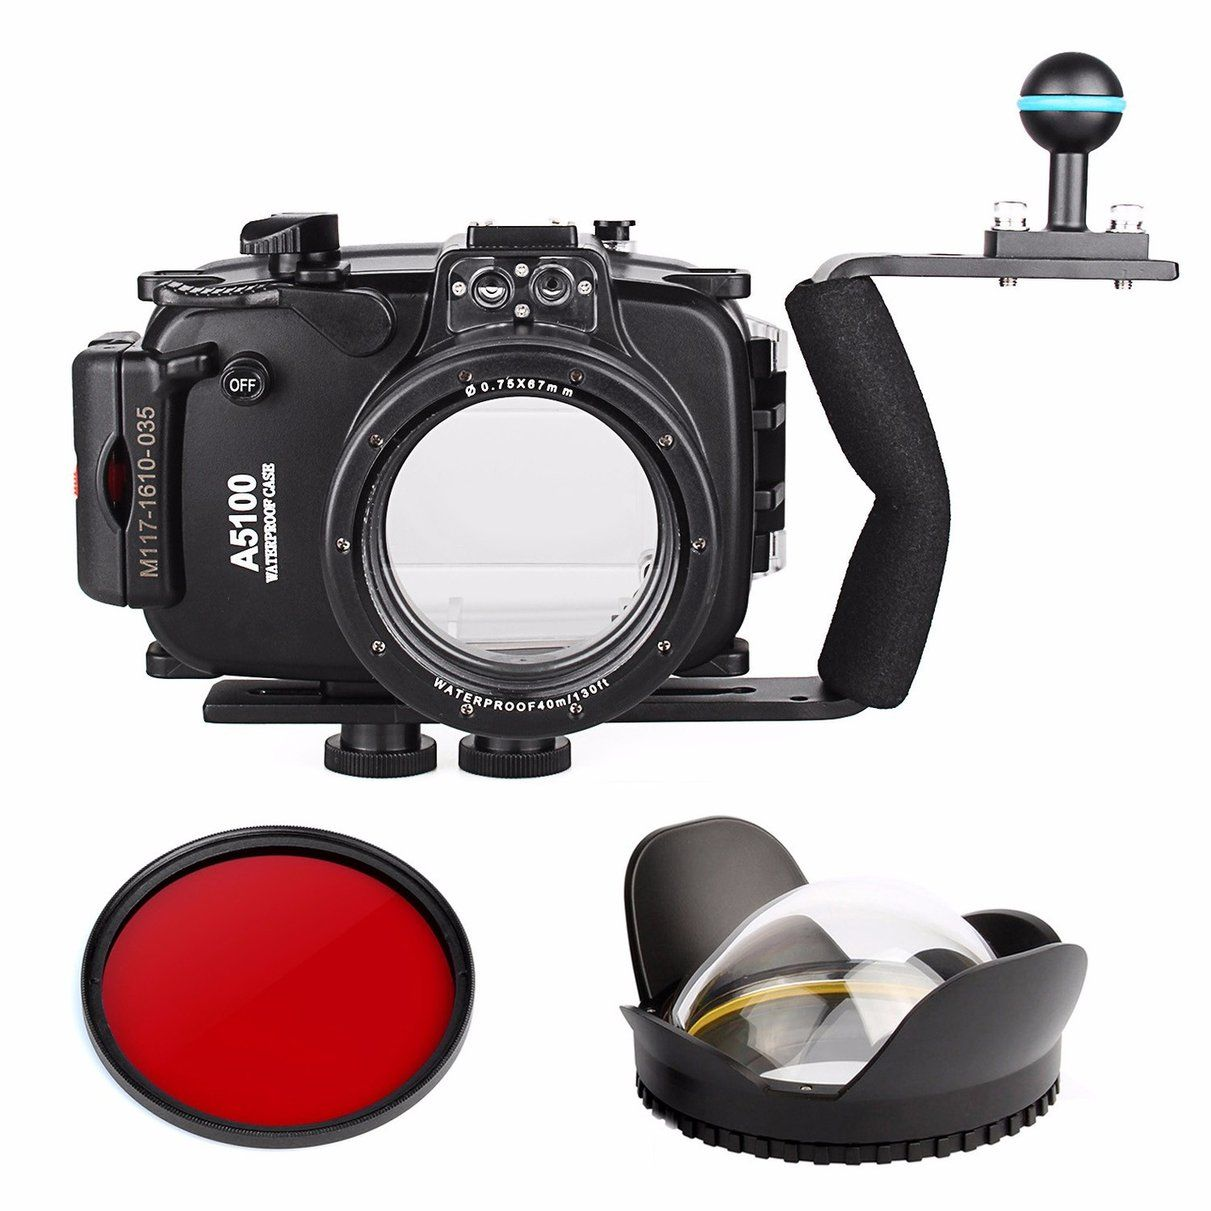 40m 130ft Waterproof Underwater Camera Housing Case Bag for Sony A5100 16-50mm Lens + Diving handle+Fisheye Lens + Red Filter